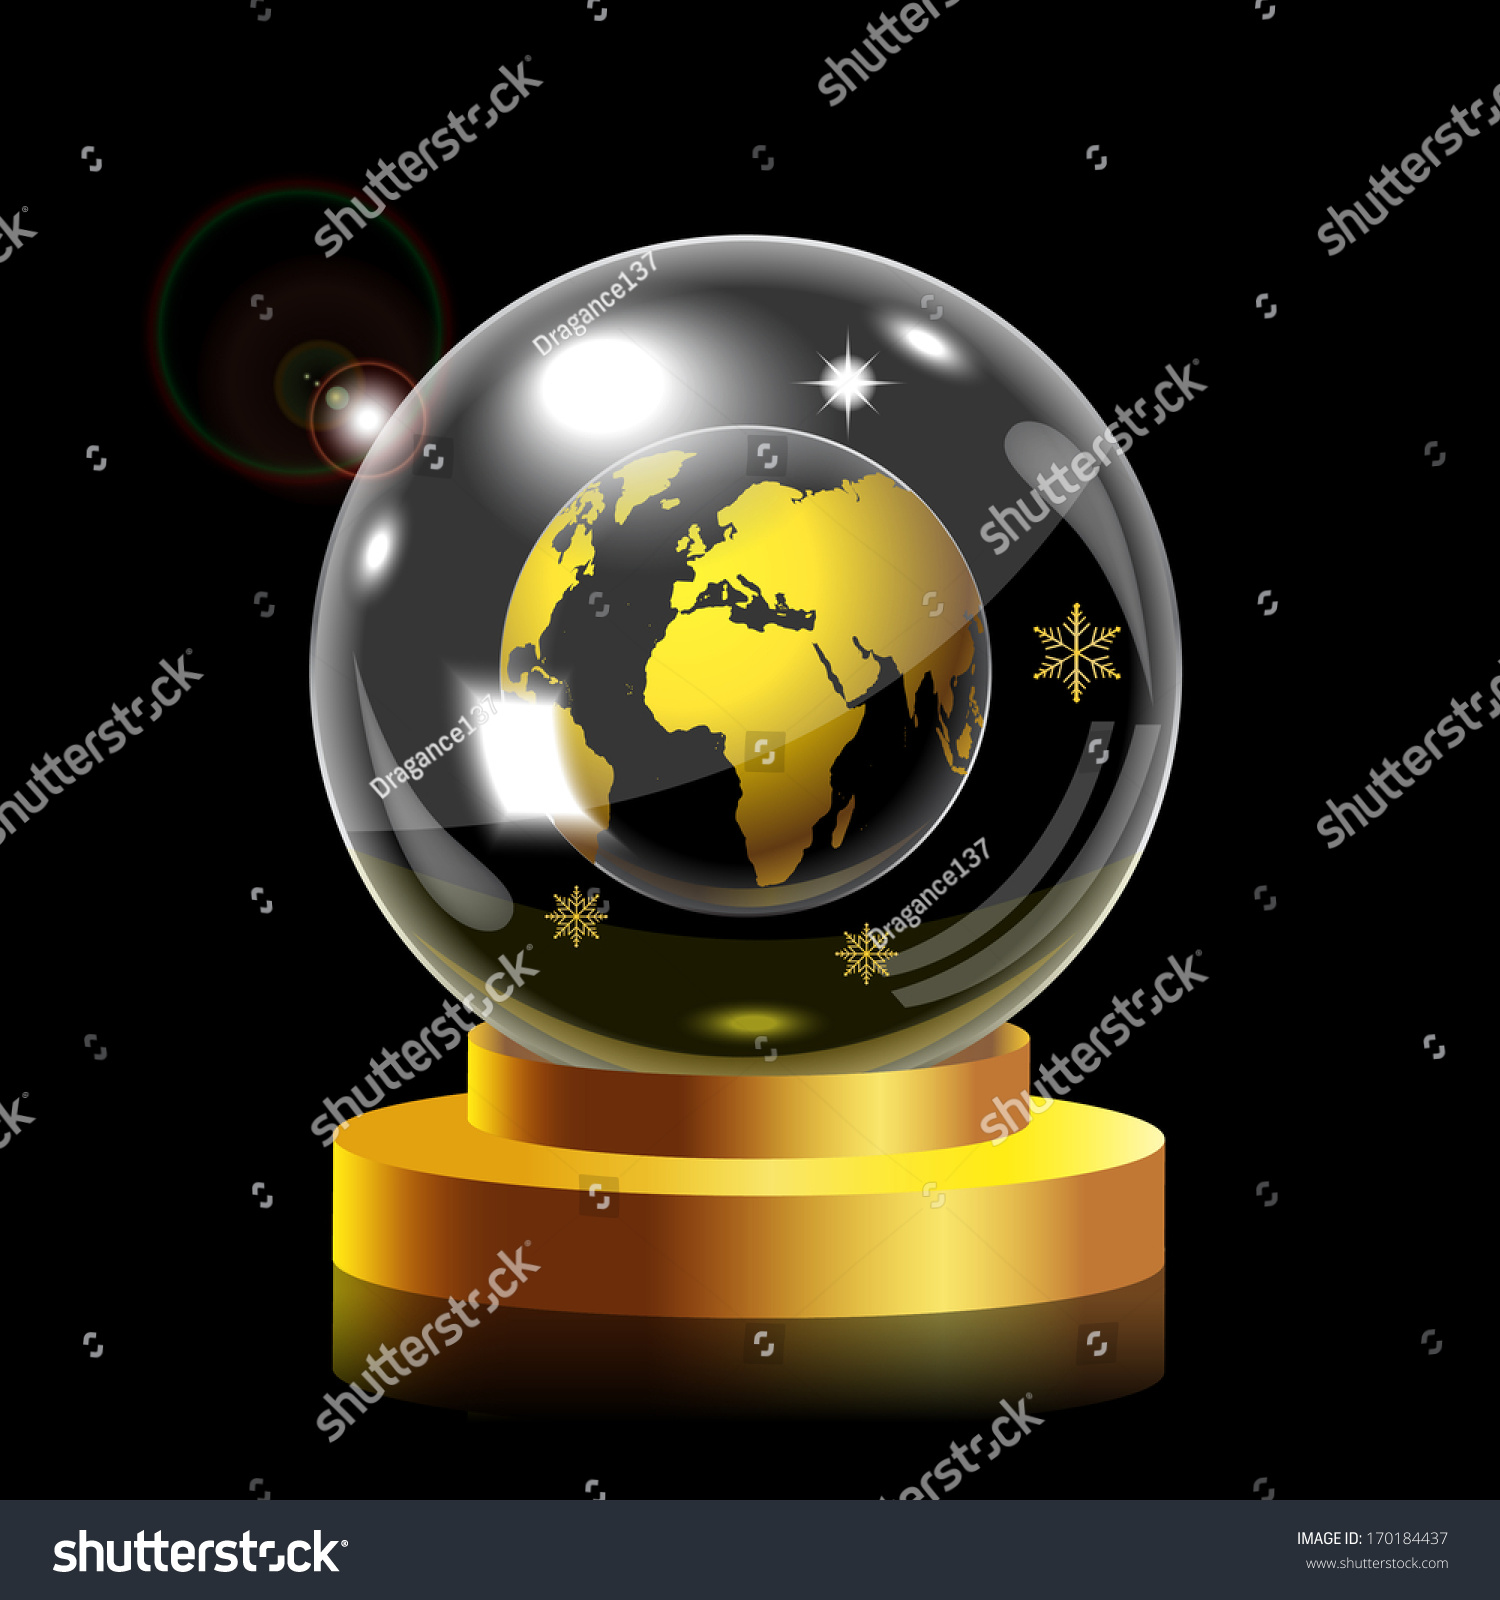 Snow globe world map stock vector 170184437 shutterstock snow globe with world map gumiabroncs Images